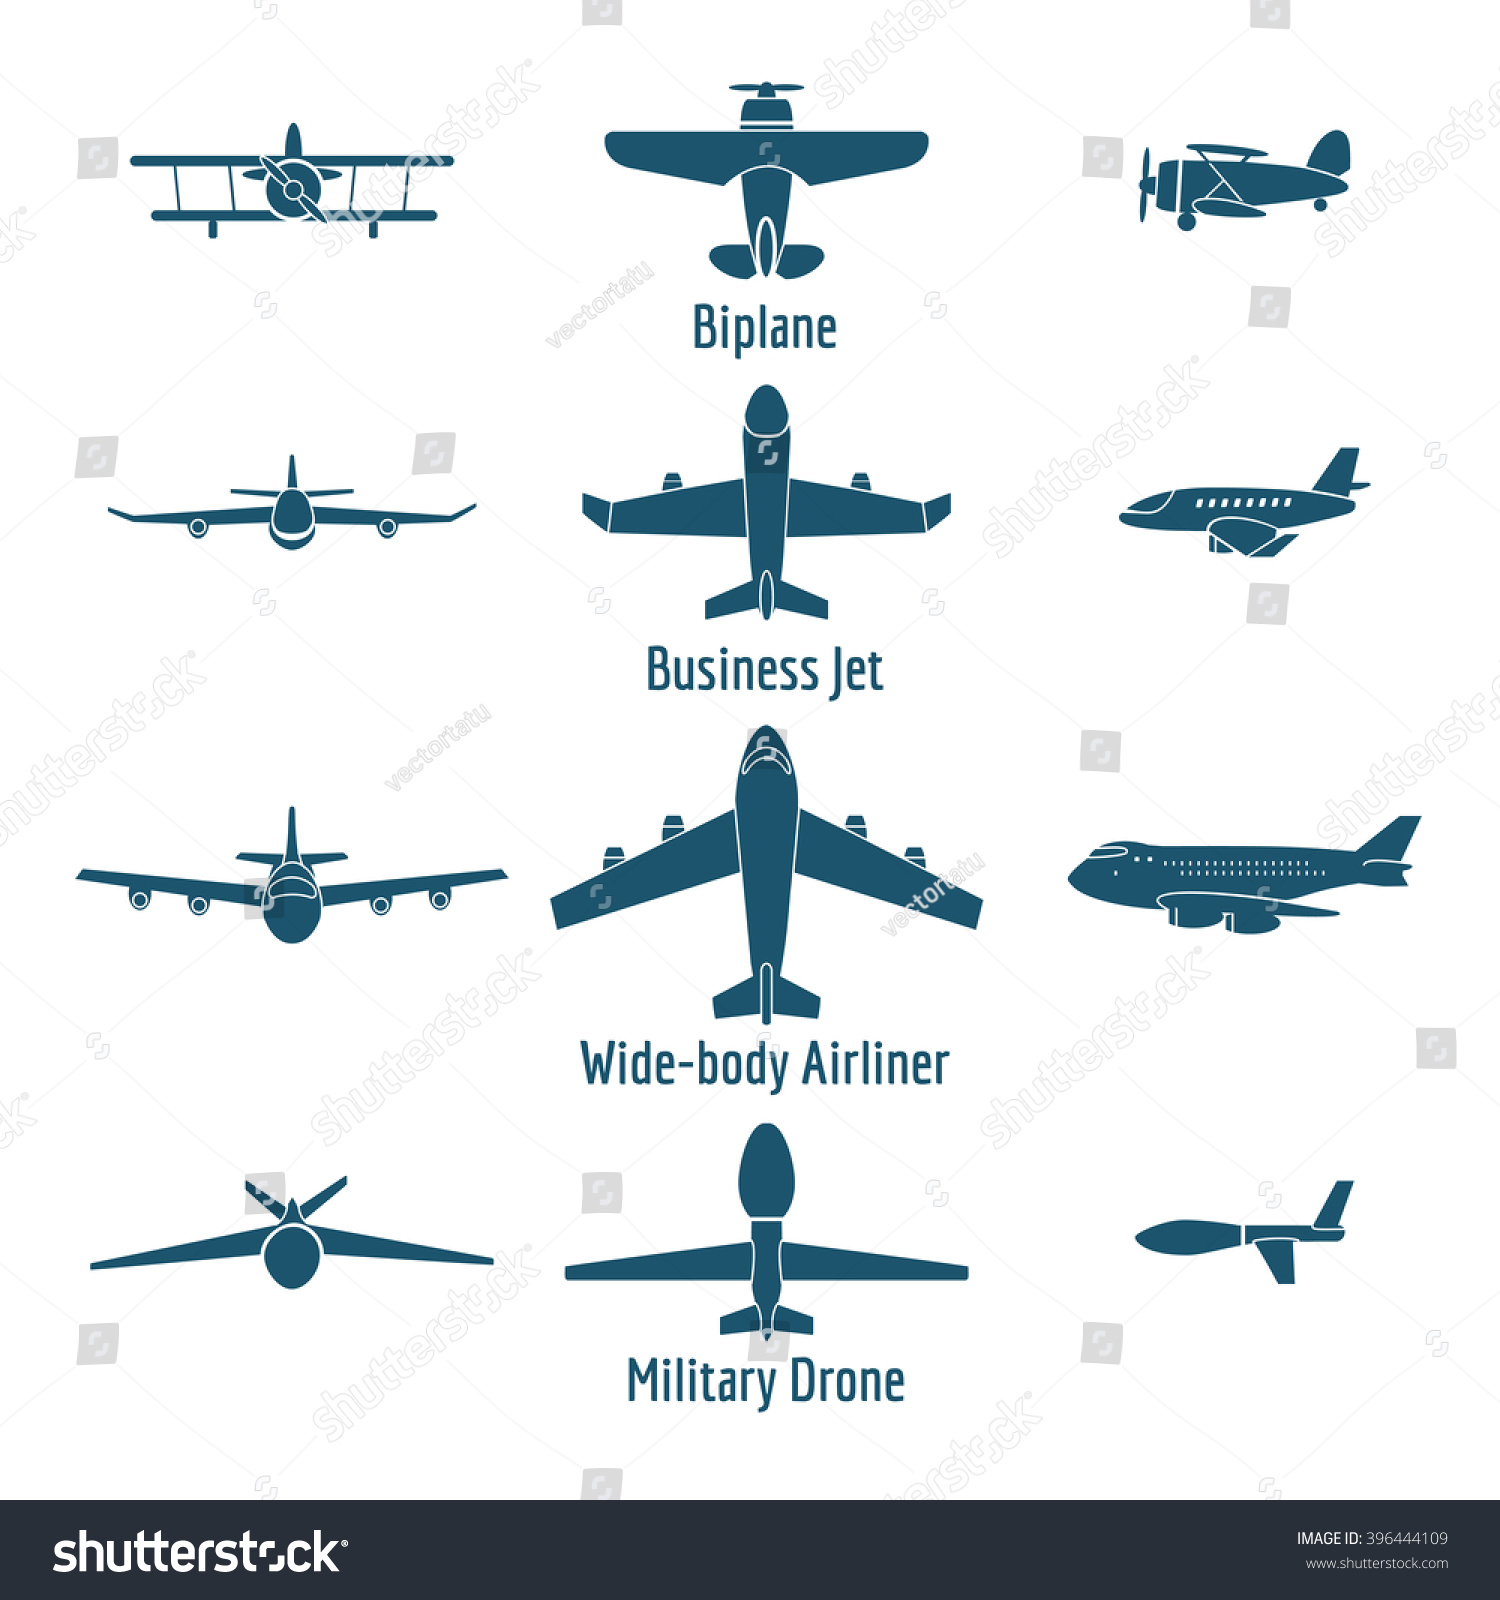 different airplanes types retro plane business stock vector different airplanes types retro plane and business jet passenger and military drone vector